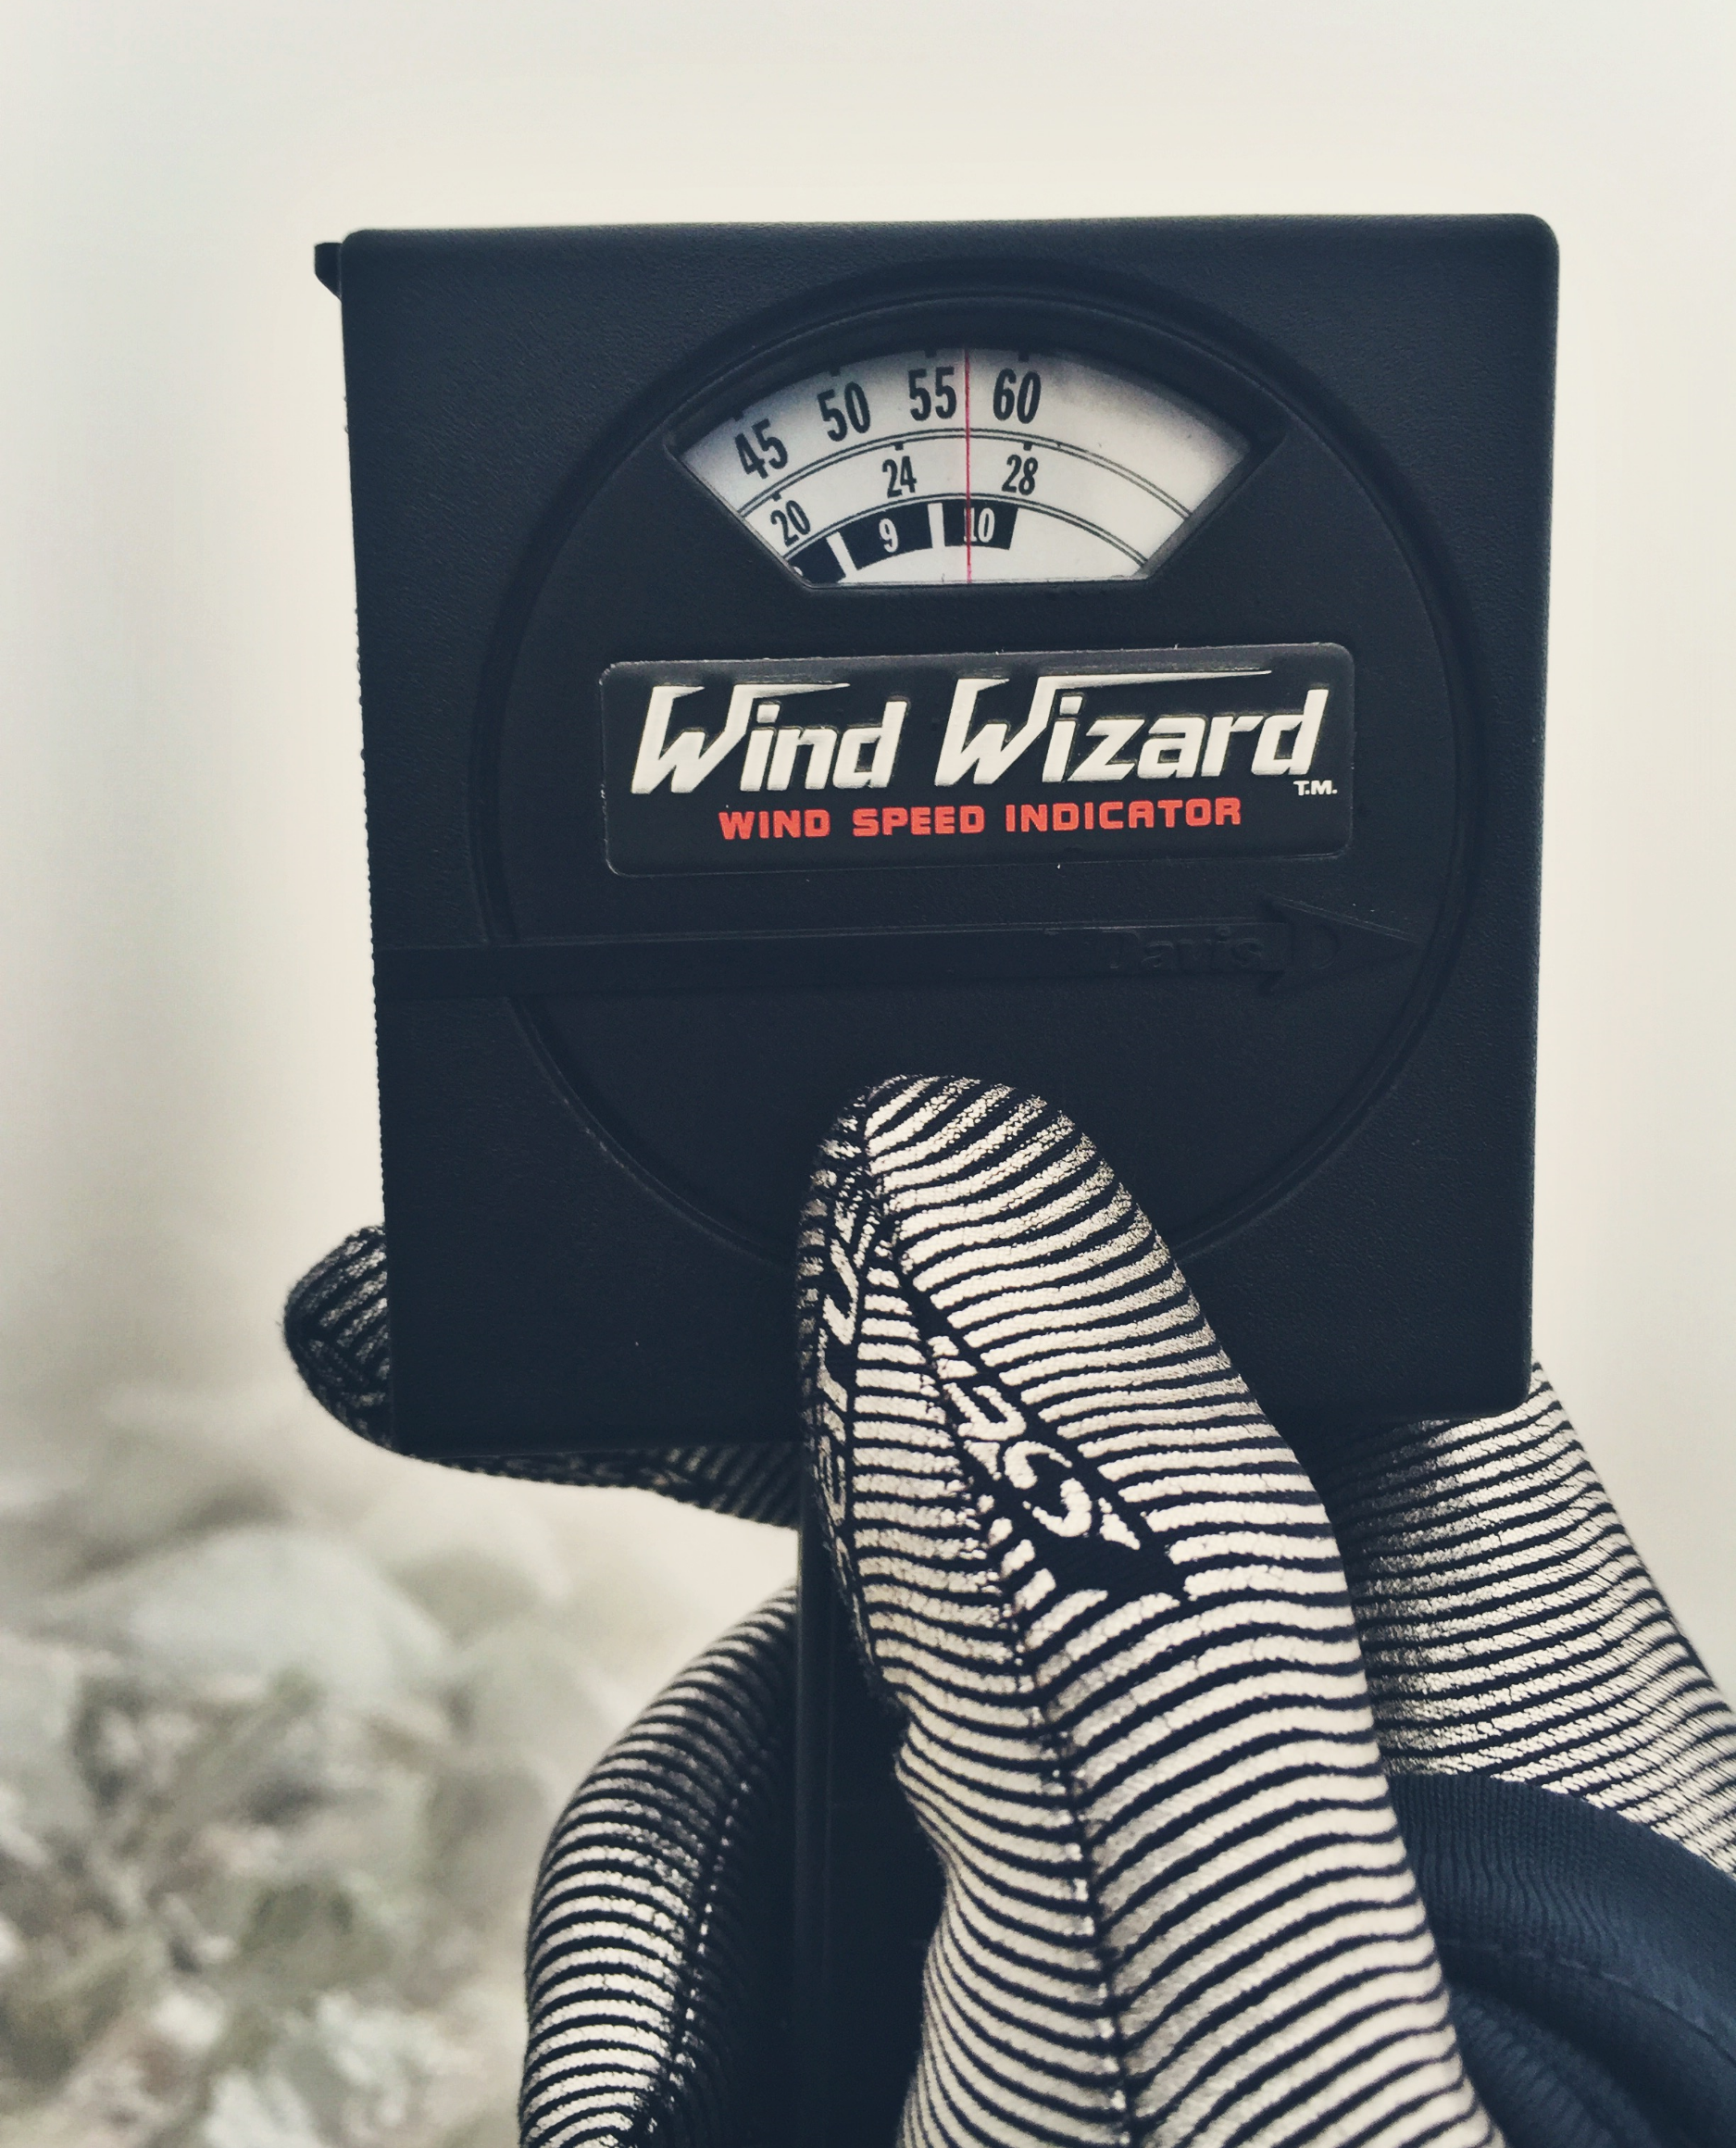 The winds a top the Knife Edge frequently maxed out the Wind Wizard's™ top reading of 60mph.